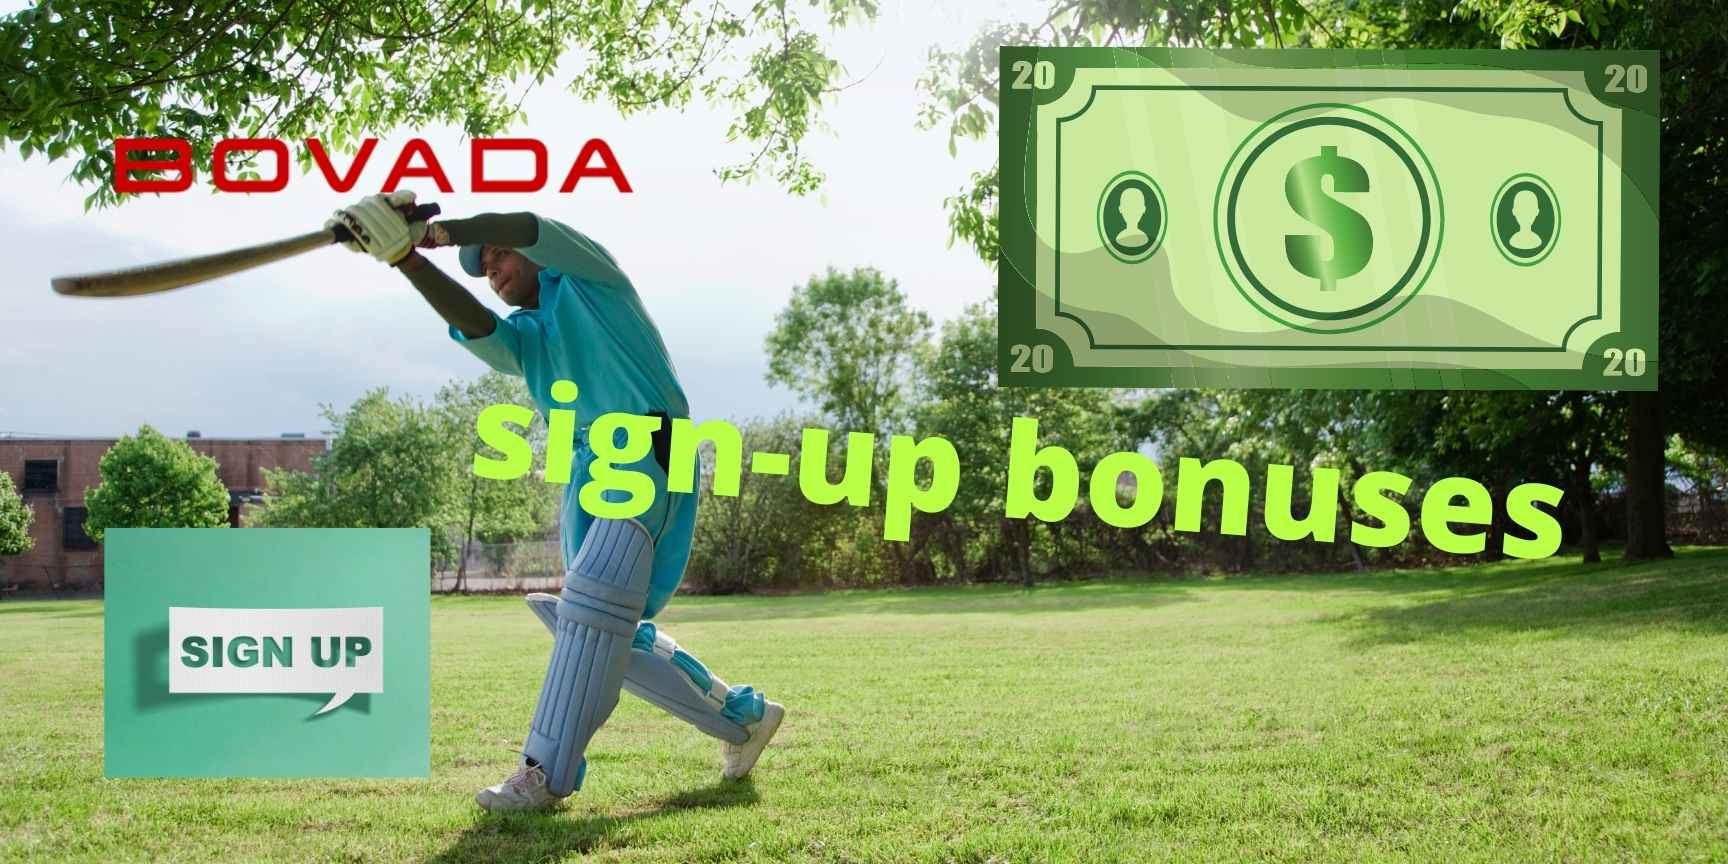 bovada sign up